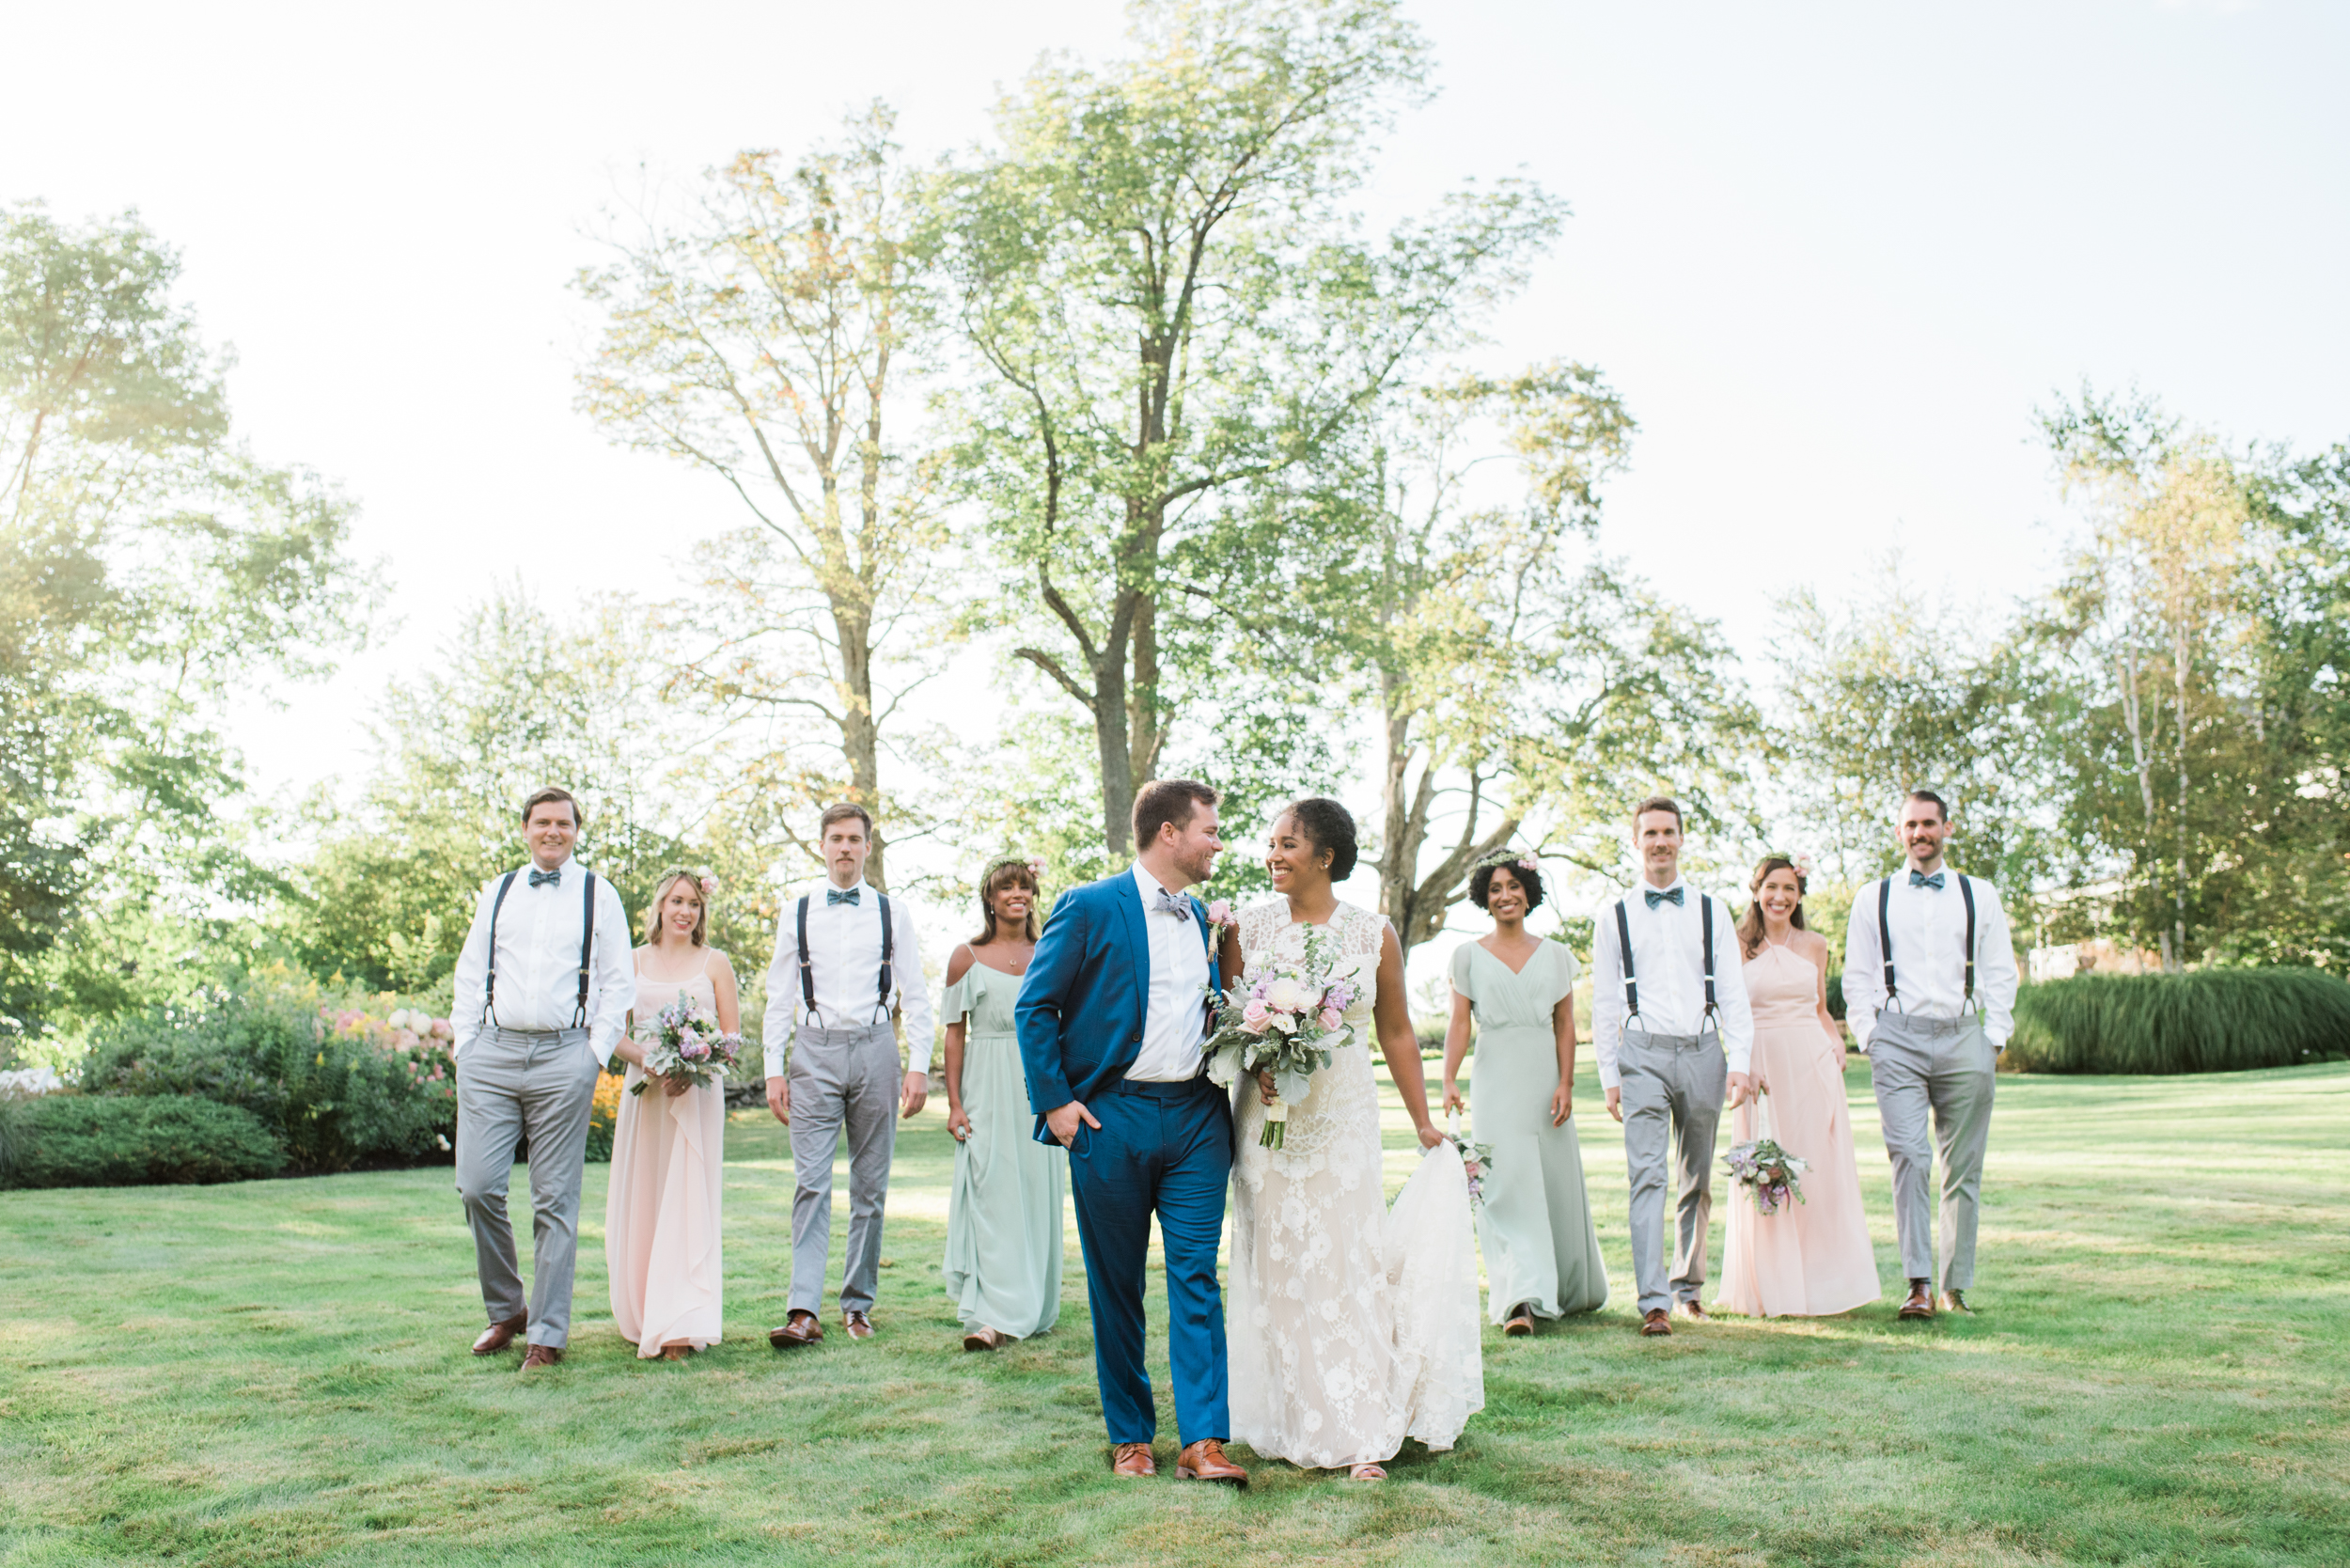 Wedding Photographers near Lenox MA